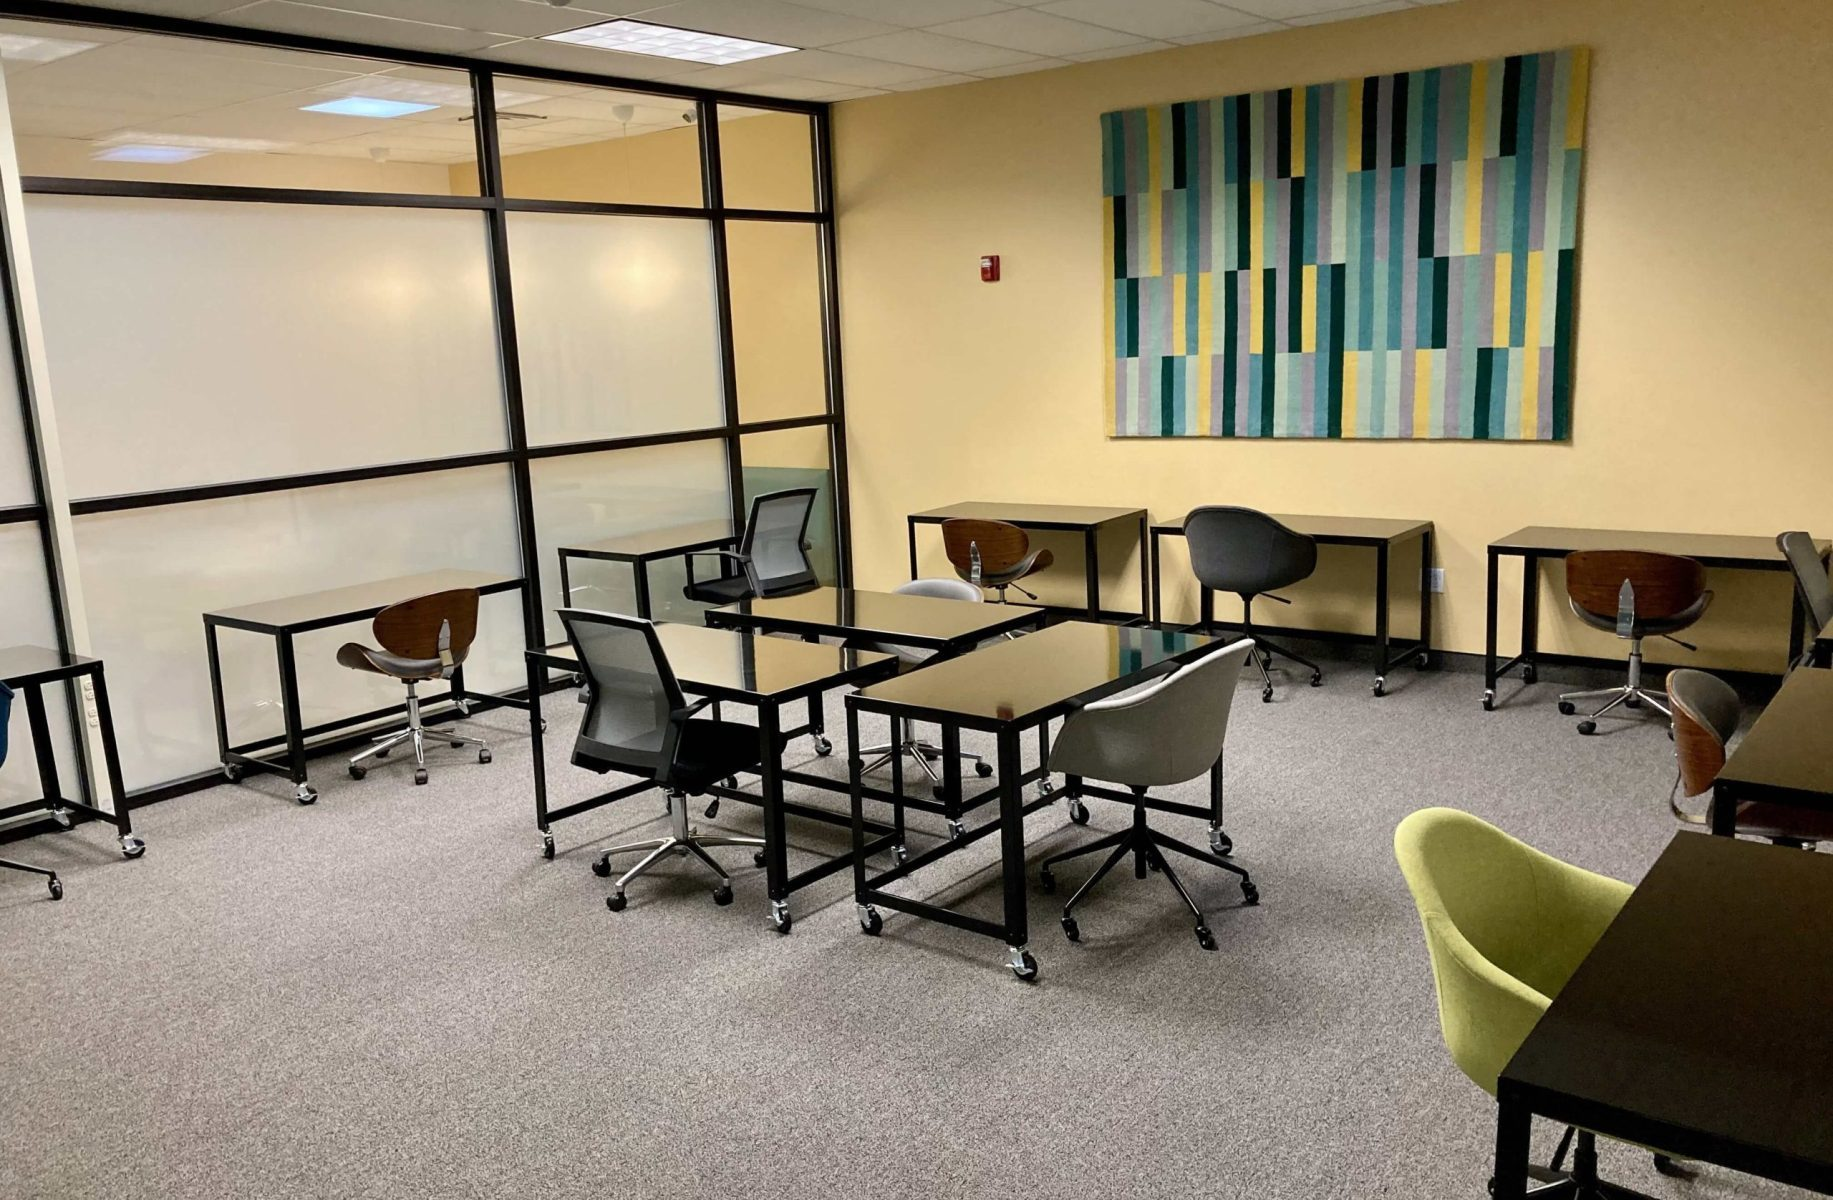 The Quiet Room has many wooden tables and chairs in a large, open space.